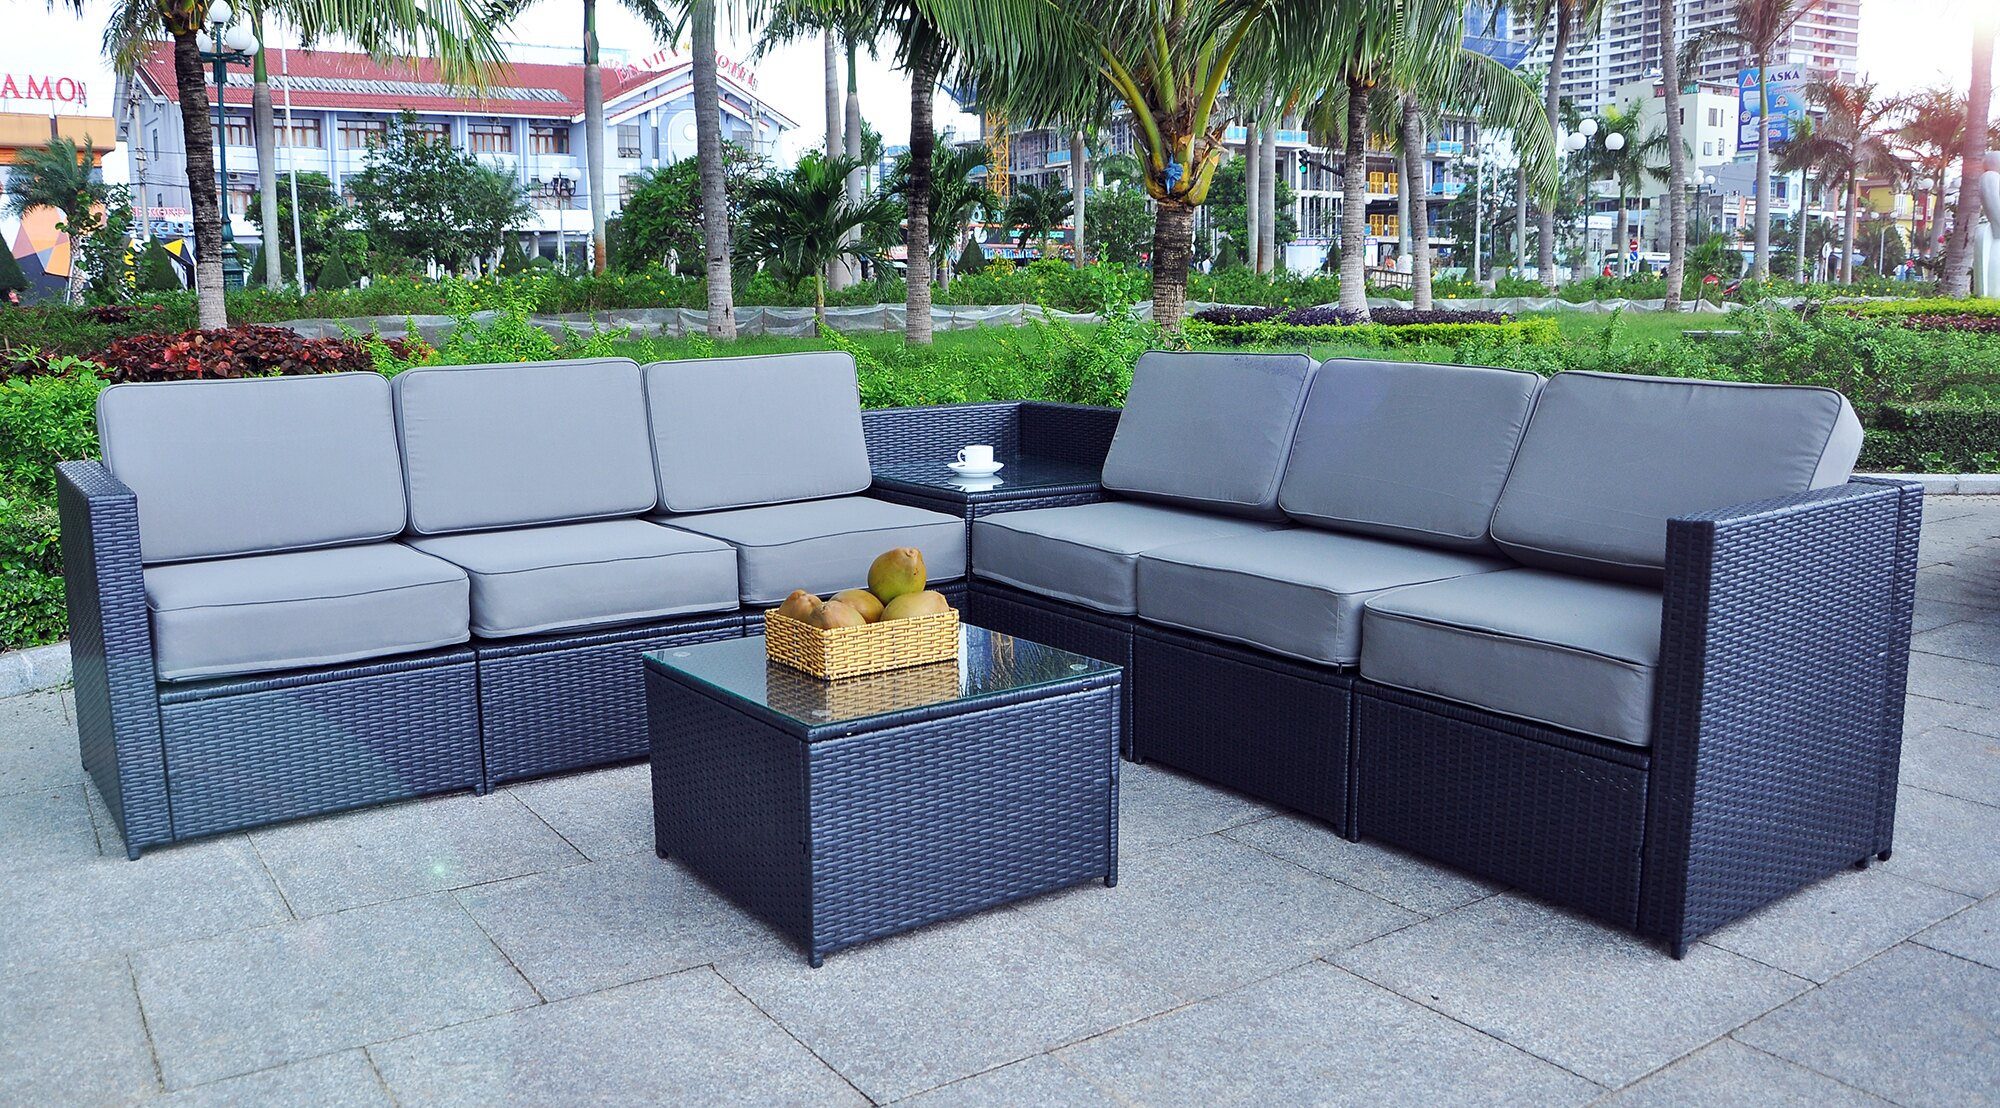 Mcombo Mcombo Black Wicker Patio Sofa Steel Outdoor Patio Furniture